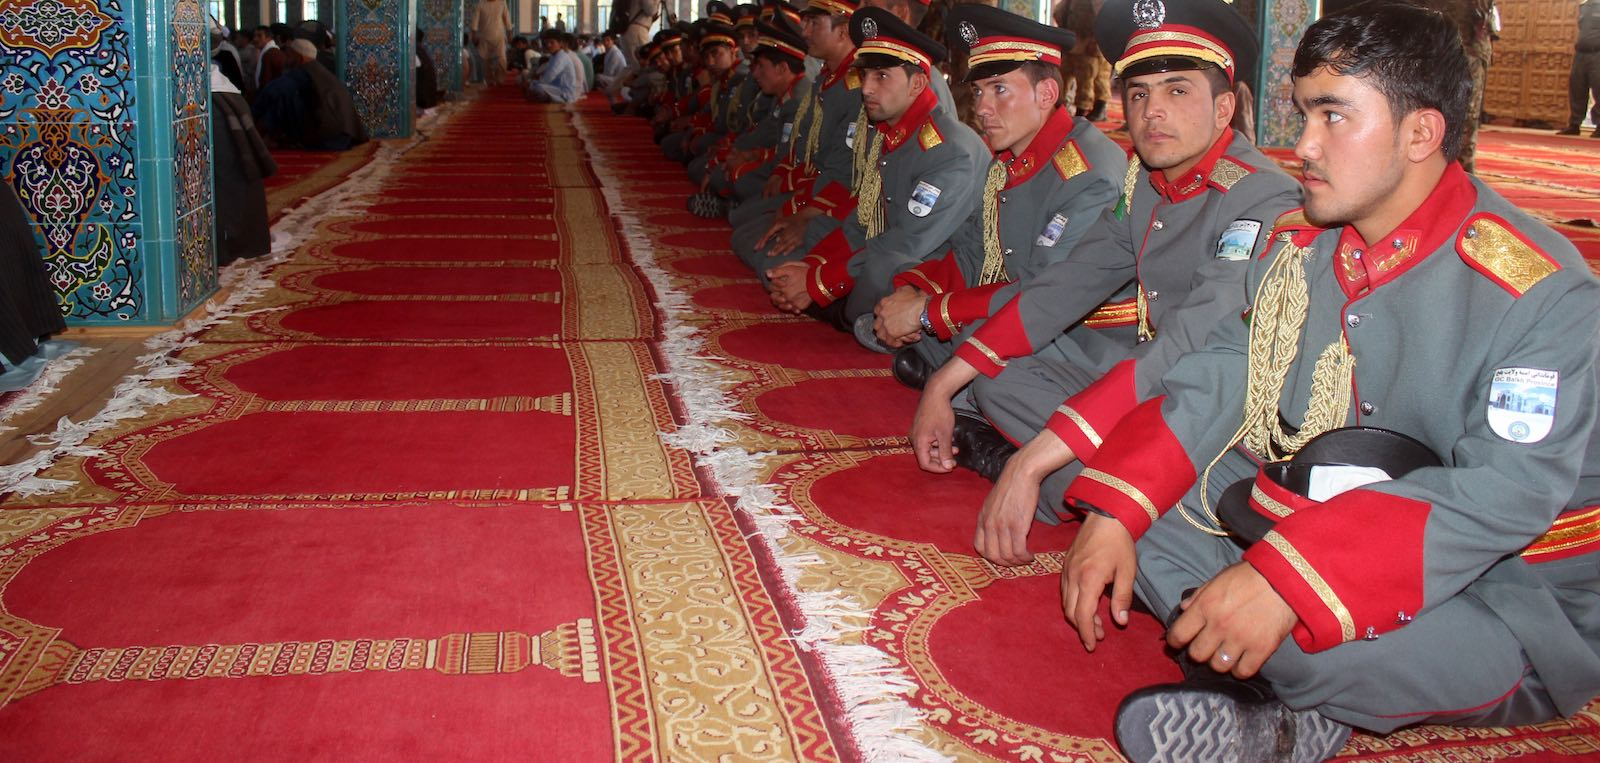 Eid al-Fitr prayer in Balkh, Afghanistan, on 15 June, during a rare ceasefire in the 17-year conflict (Photo: Sayed Khodaberdi Sadat via Getty)